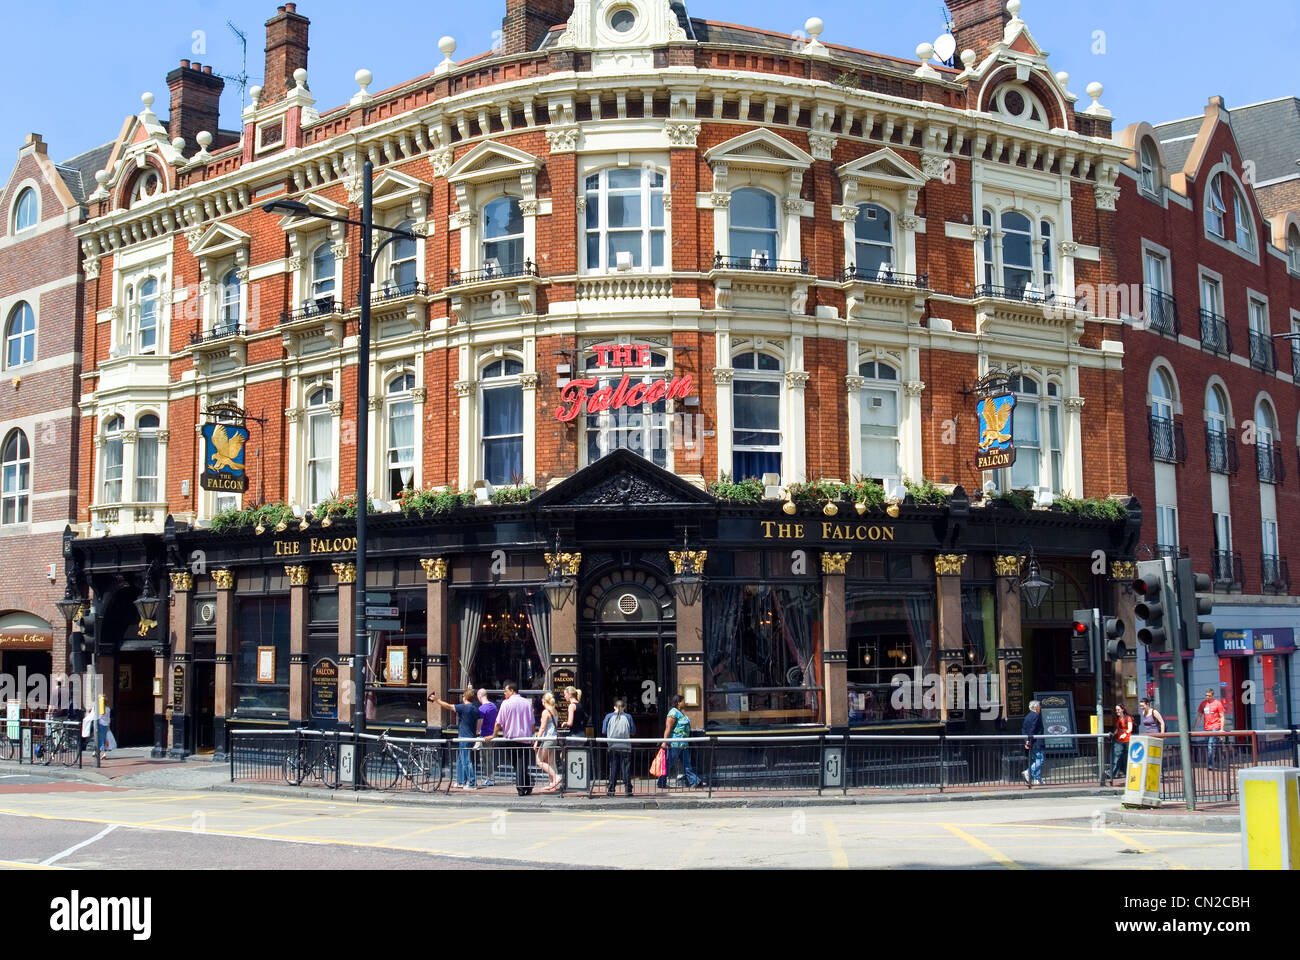 Traditional London Public House - Stock Image